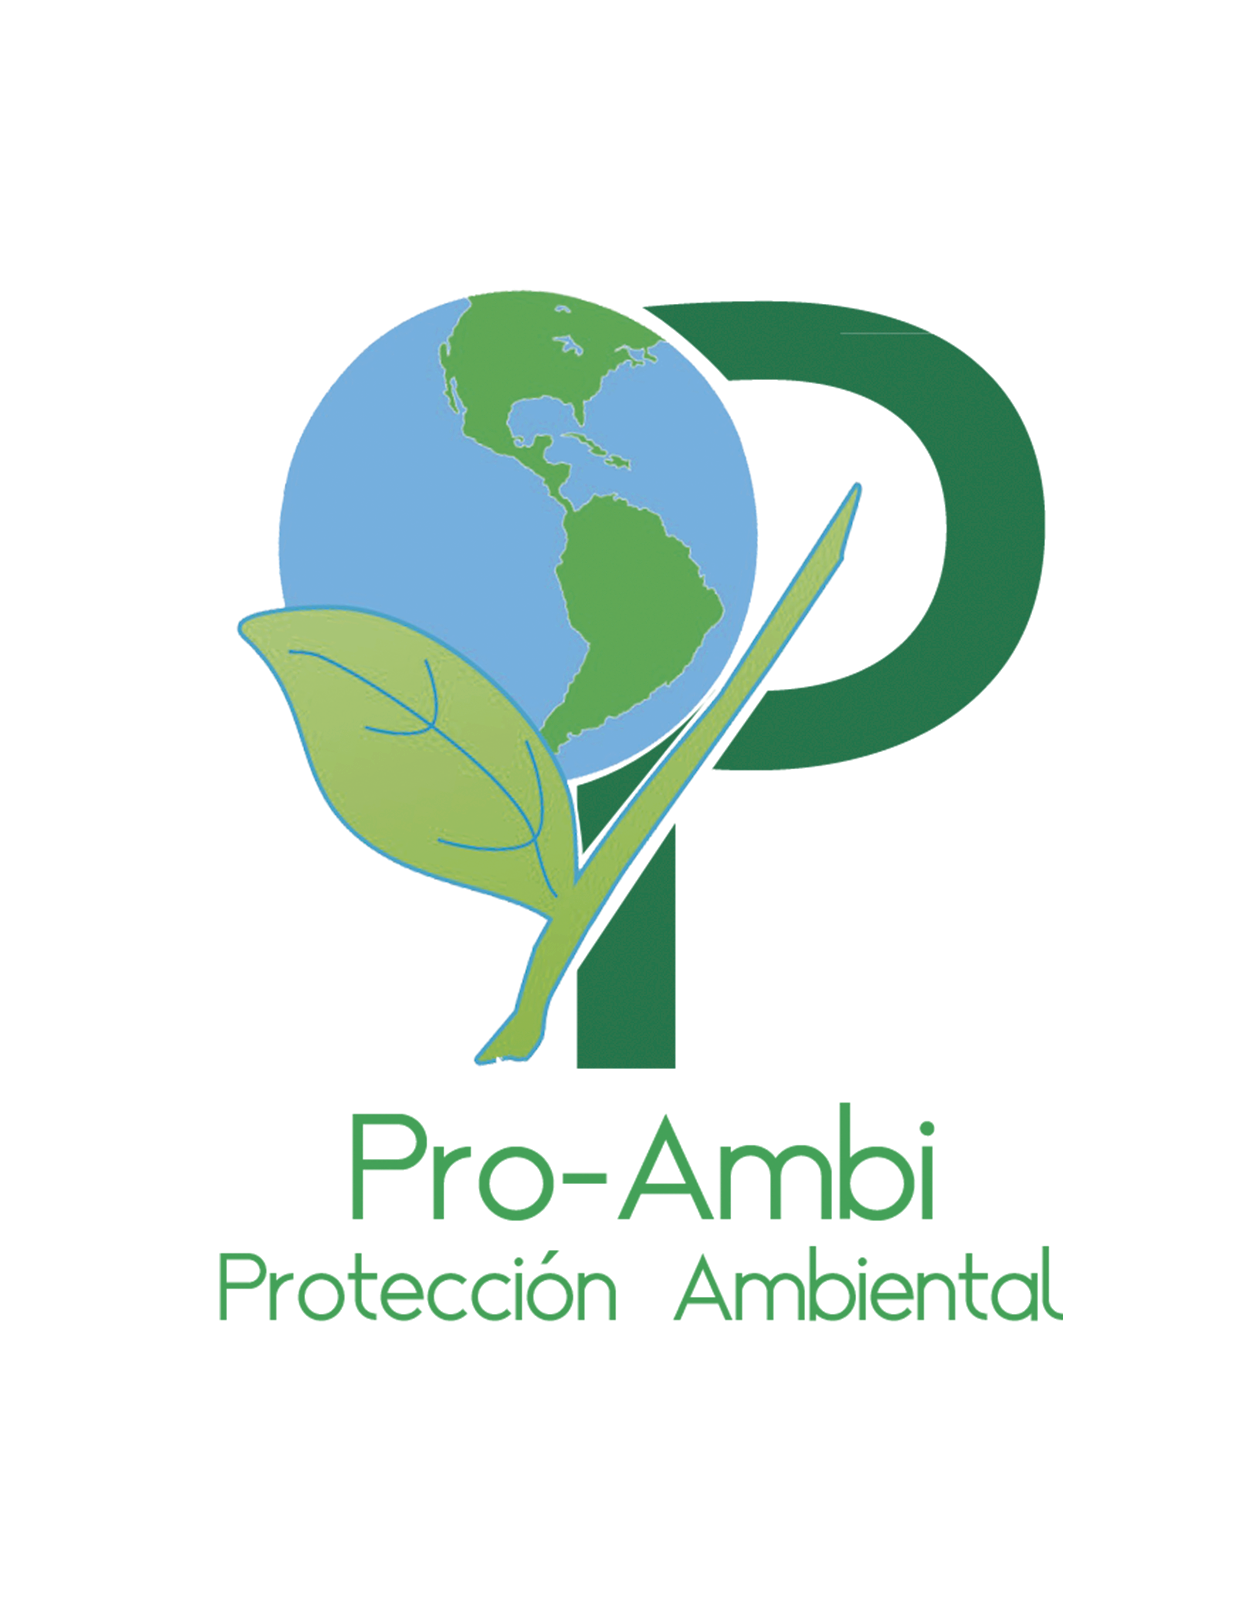 Datos - Pro-Ambi